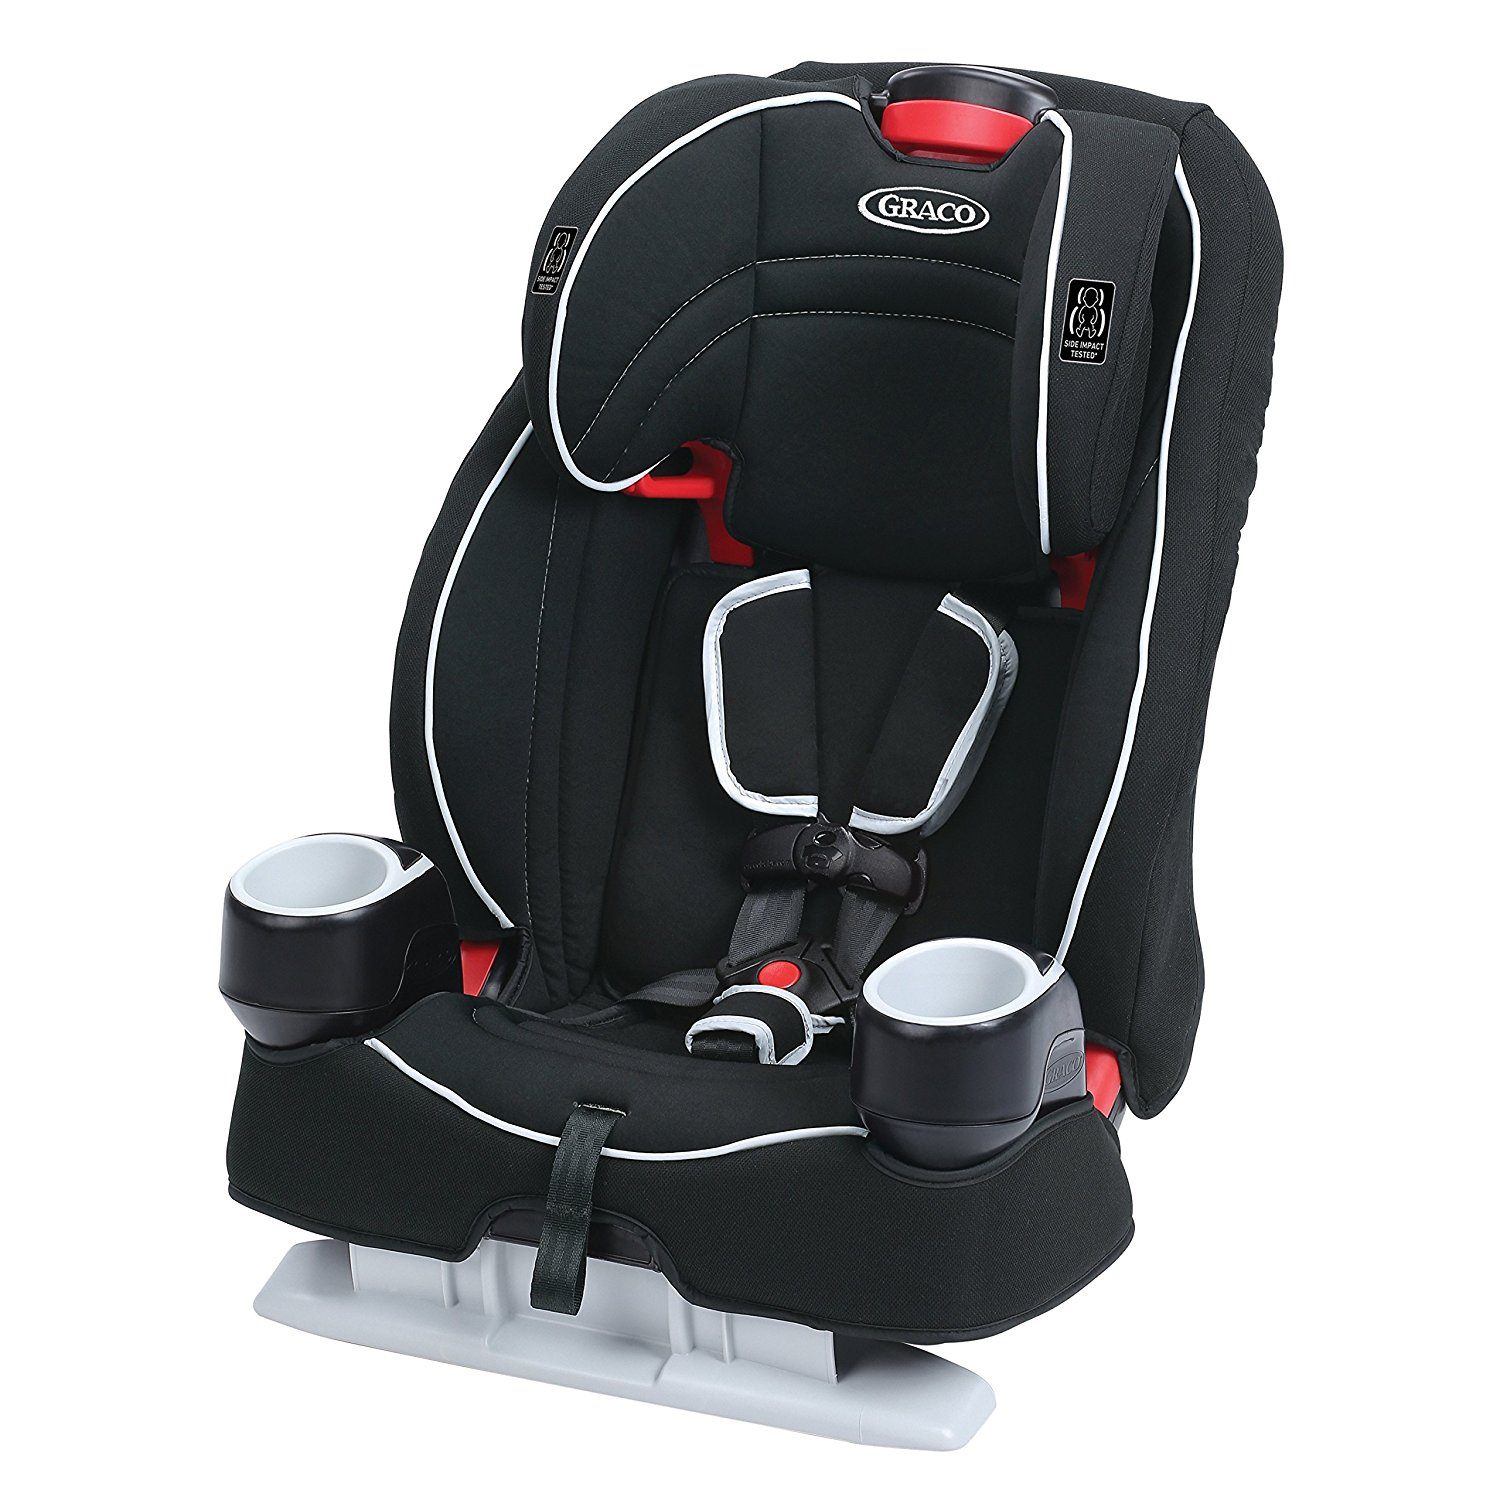 Graco Car Seat-Atlas 65 2-in-1 Harness Booster